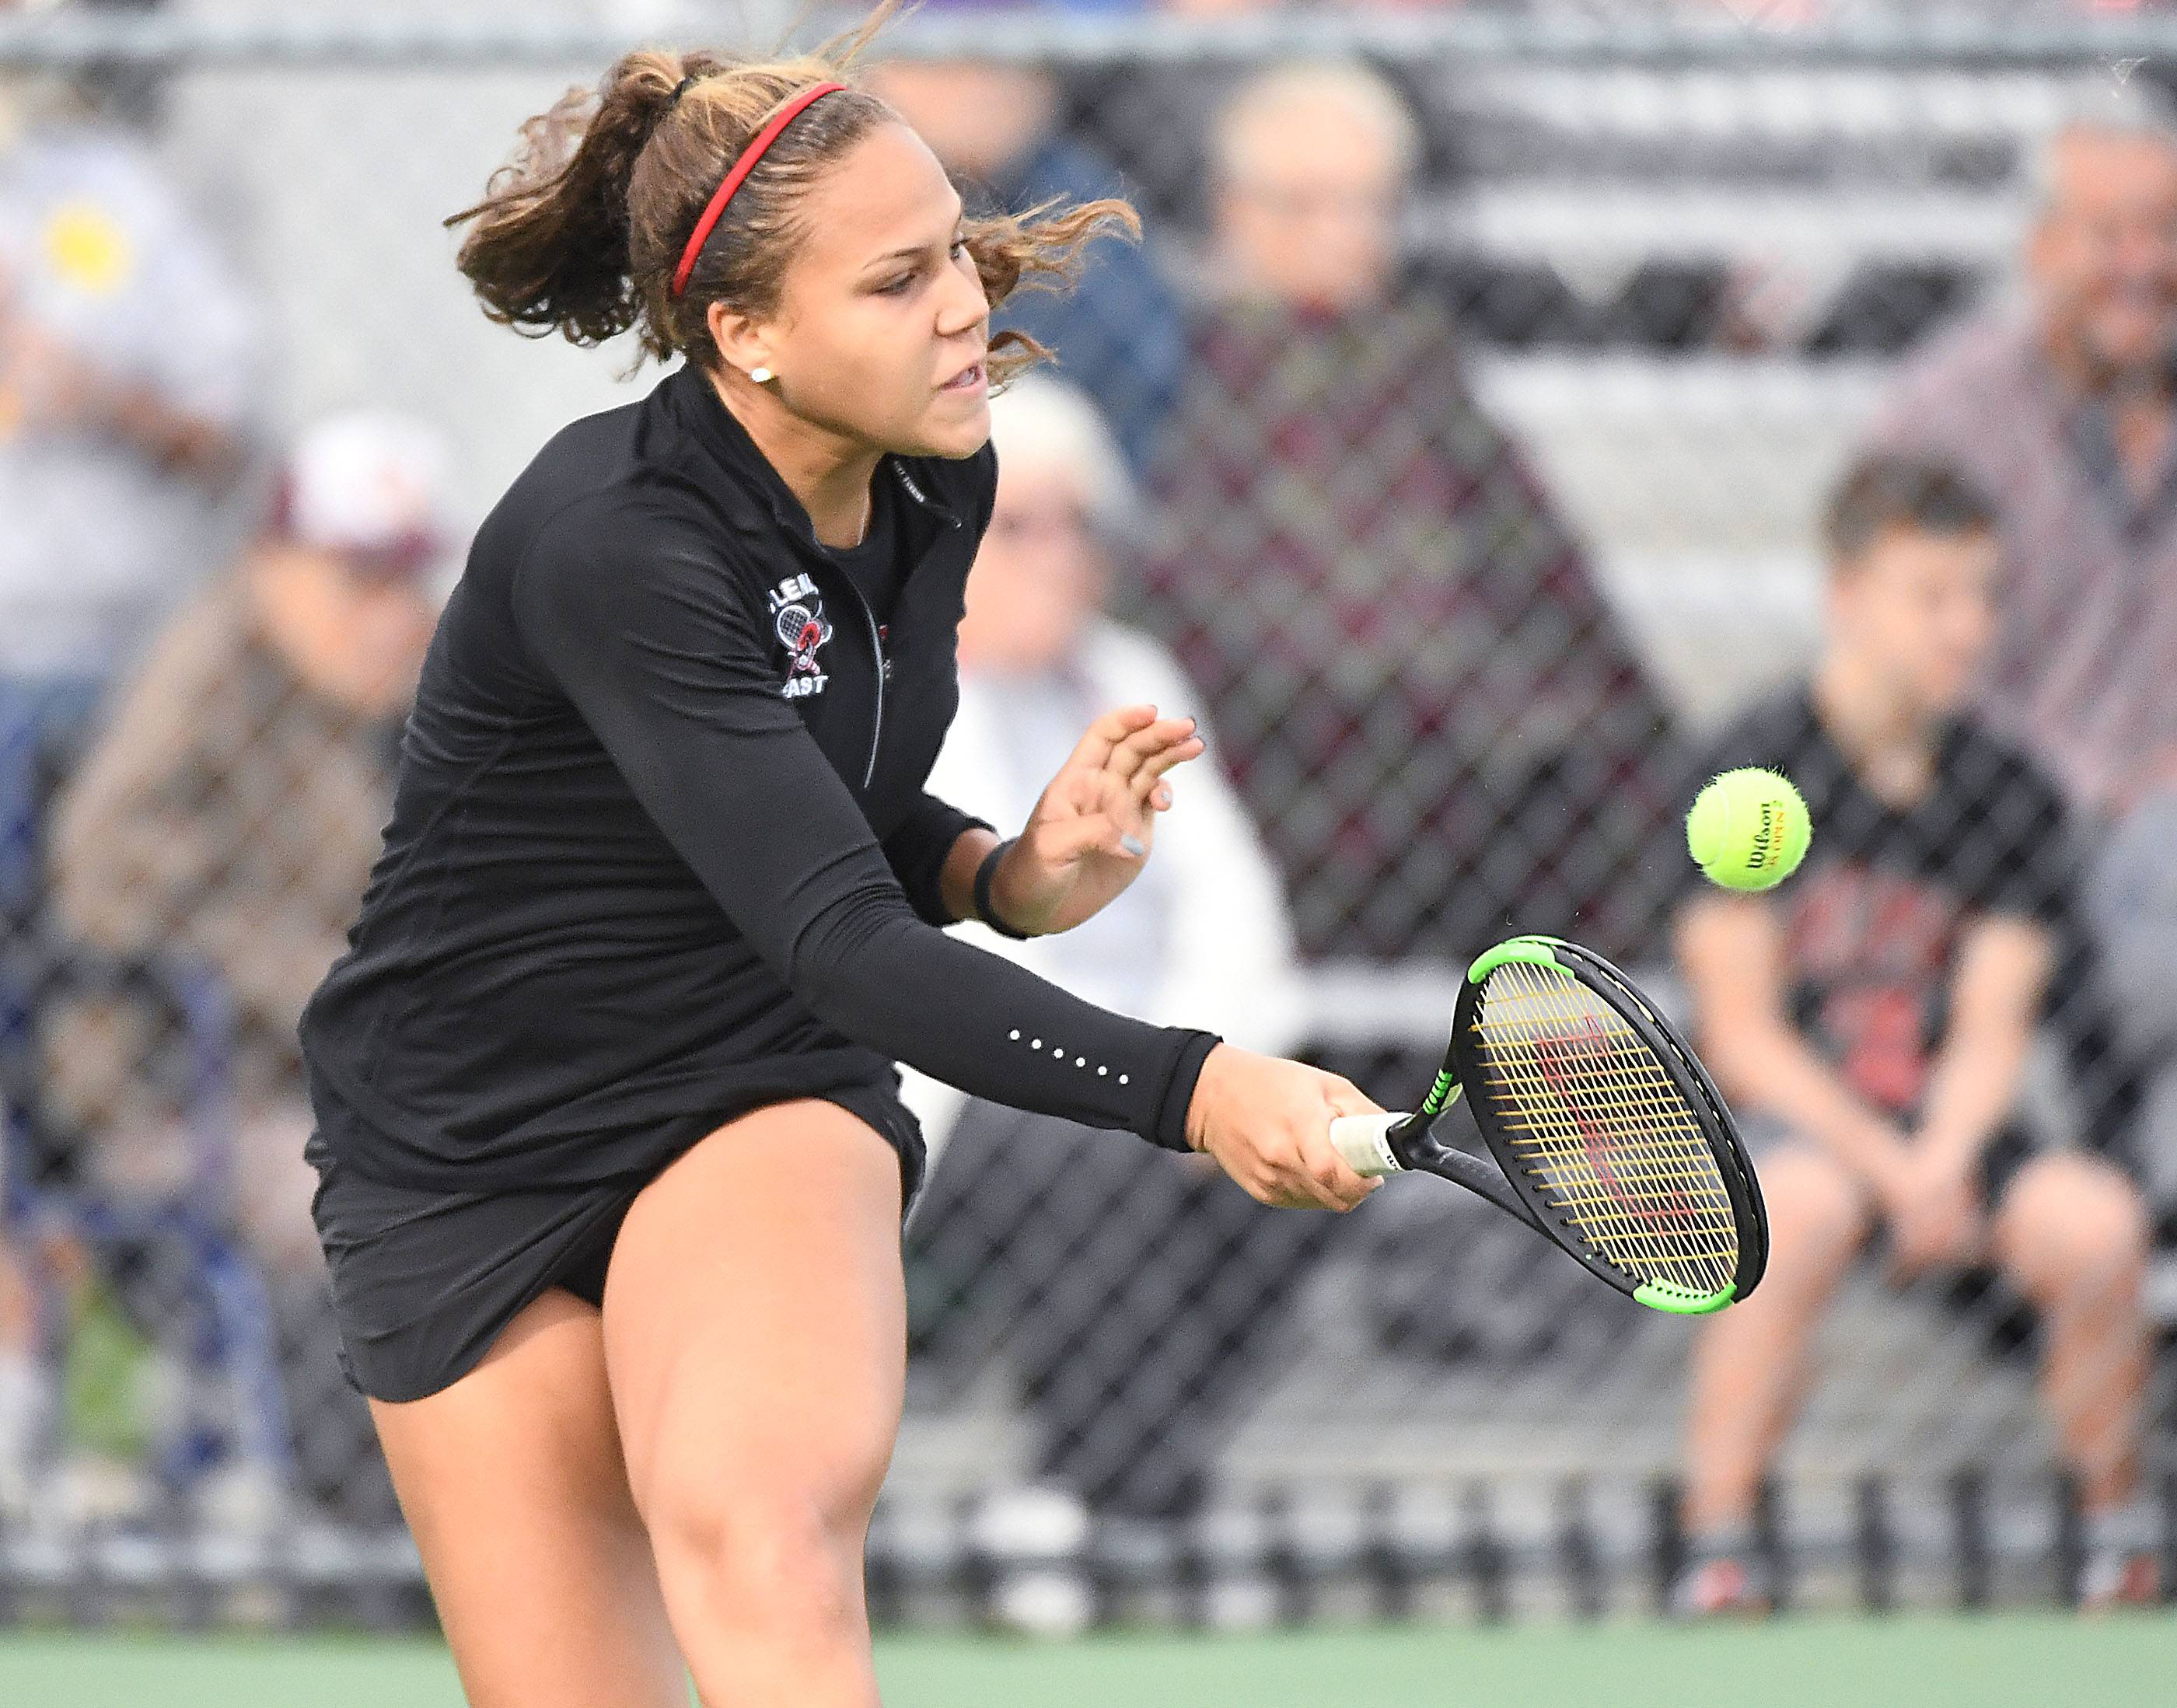 Glenbard East's Kolie Allen in the semifinal Class 2A Singles match against Niles North's Michelle Bacalla Saturday at the IHSA Girls Tennis State Finals at Buffalo Grove High School.